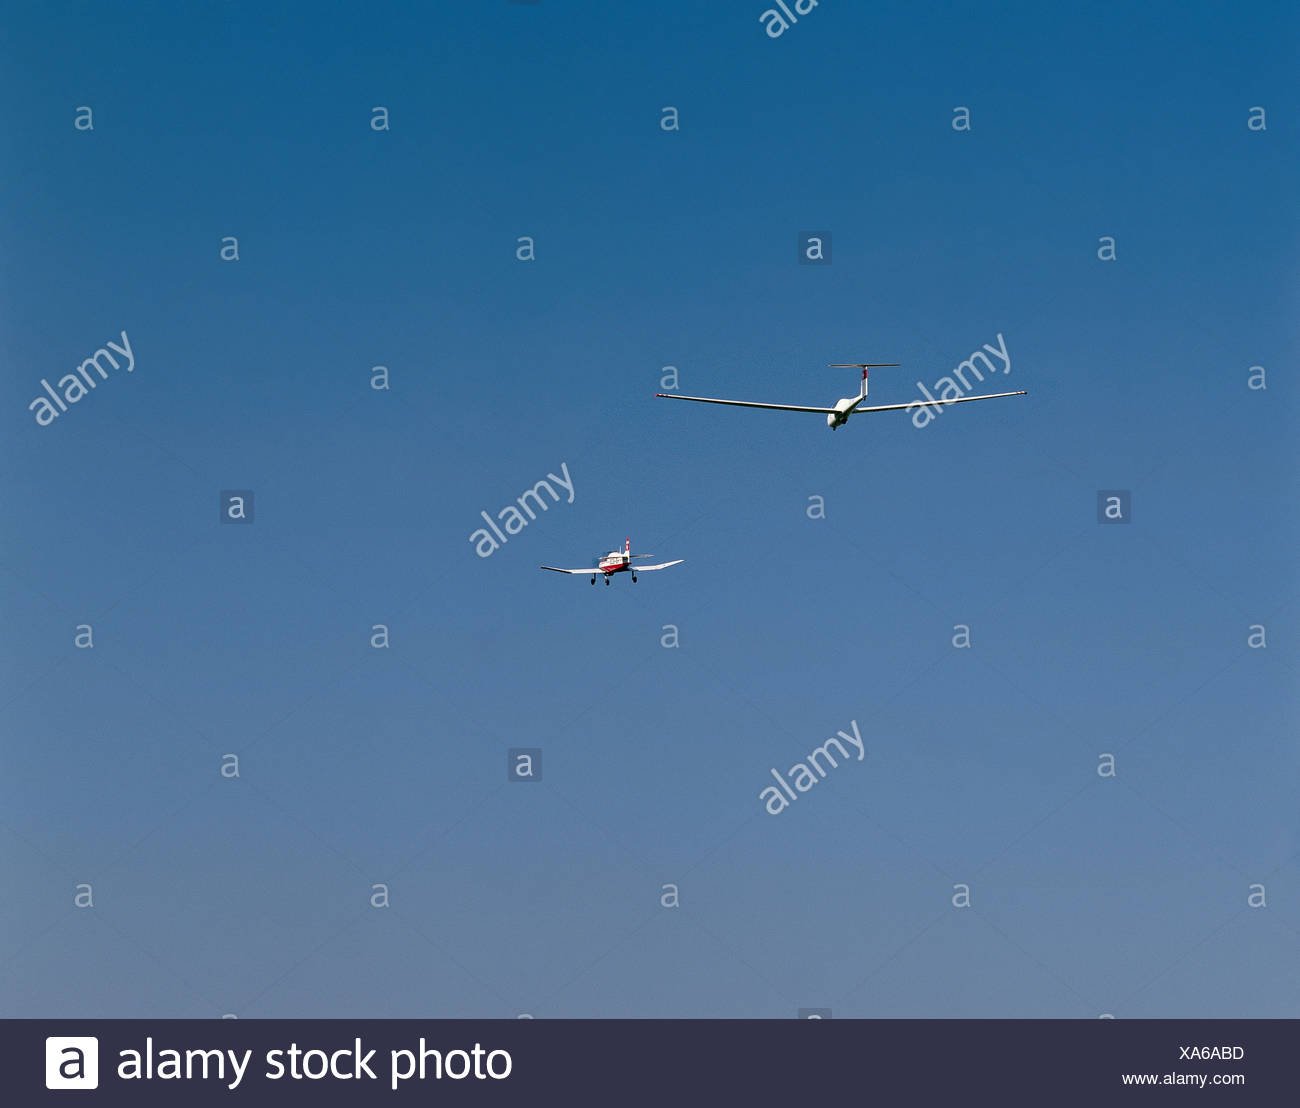 airplane fly extreme towed airplane sail airman sky - Stock Image